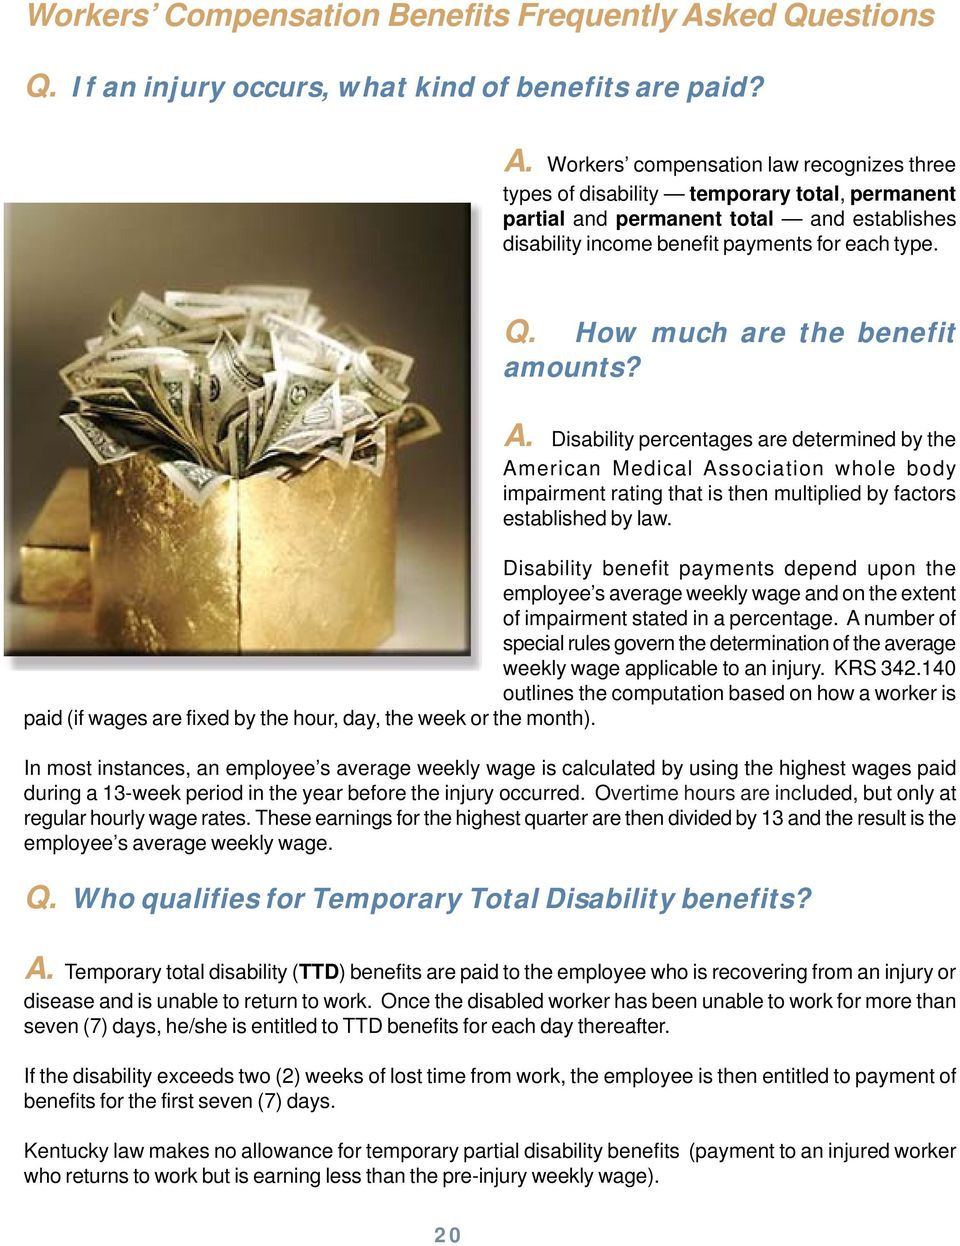 Workers compensation law recognizes three types of disability temporary total, permanent partial and permanent total and establishes disability income benefit payments for each type. Q.